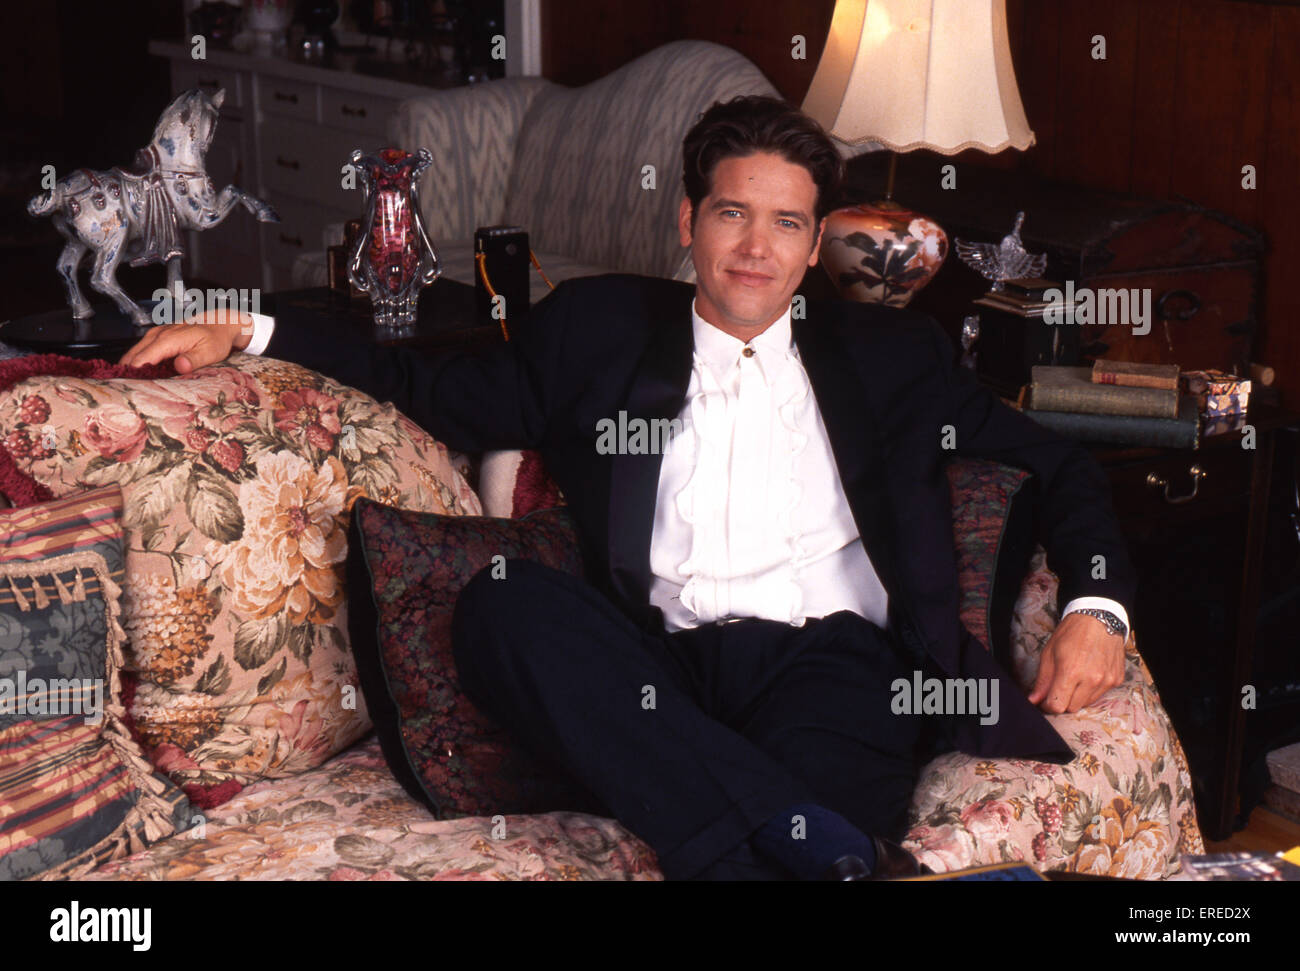 Michael Damian, portrait in his home in Los Angeles, USA. American actor, singer and producer, b April 26, 1962 - Stock Image